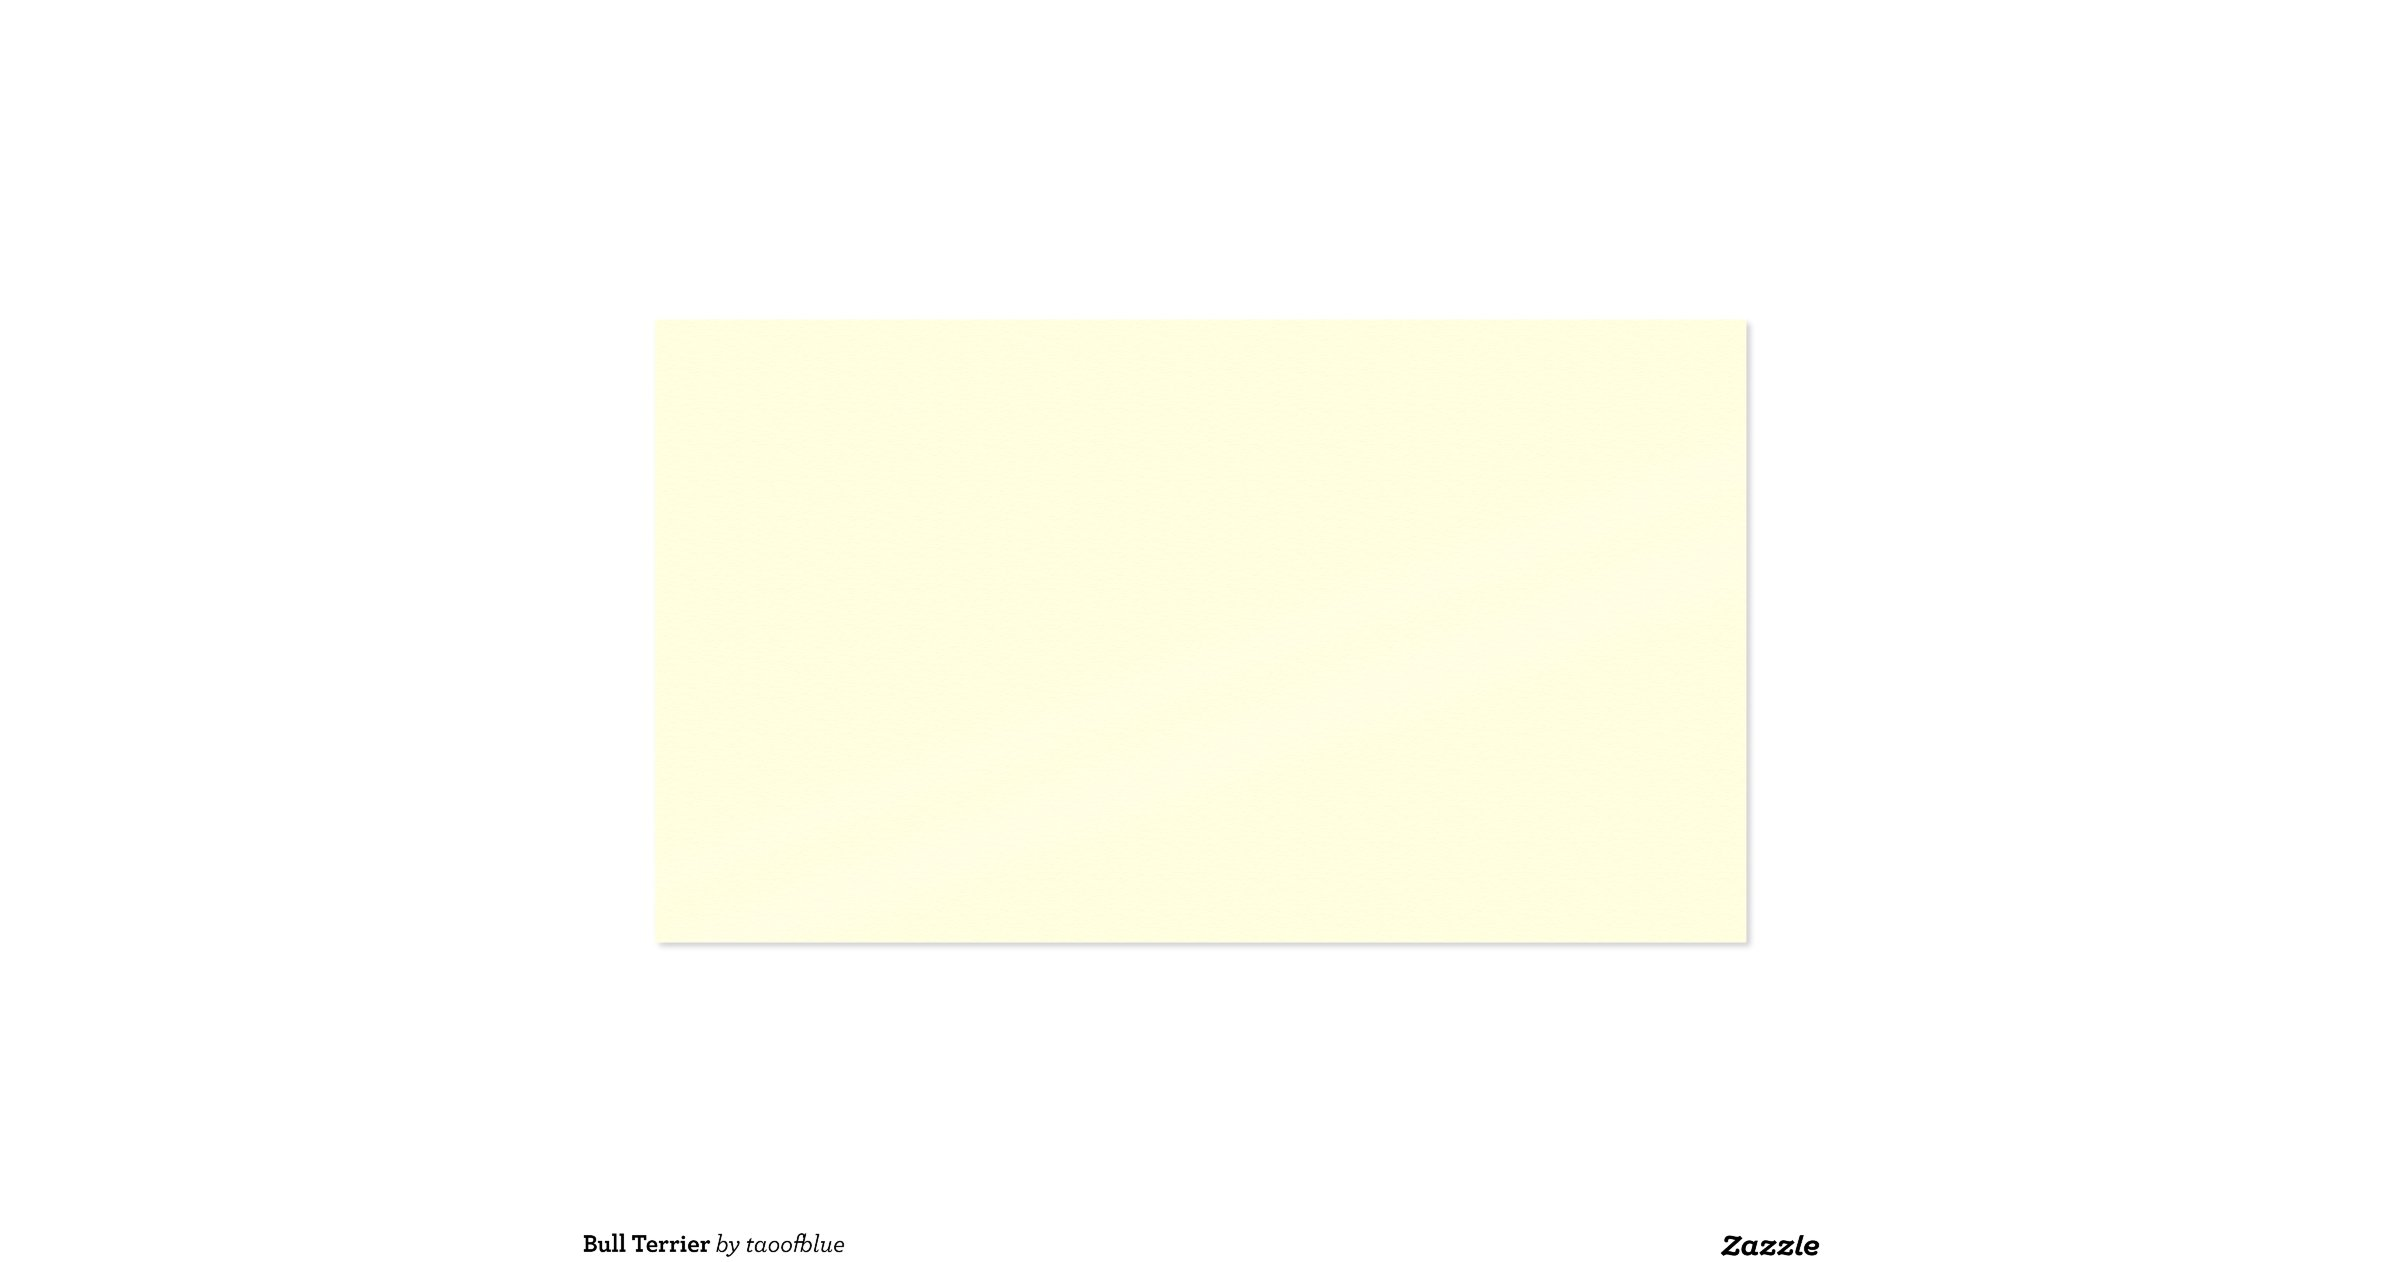 Business card printing template business card sample bull terrier pack of standard business cards zazzle cheaphphosting Image collections